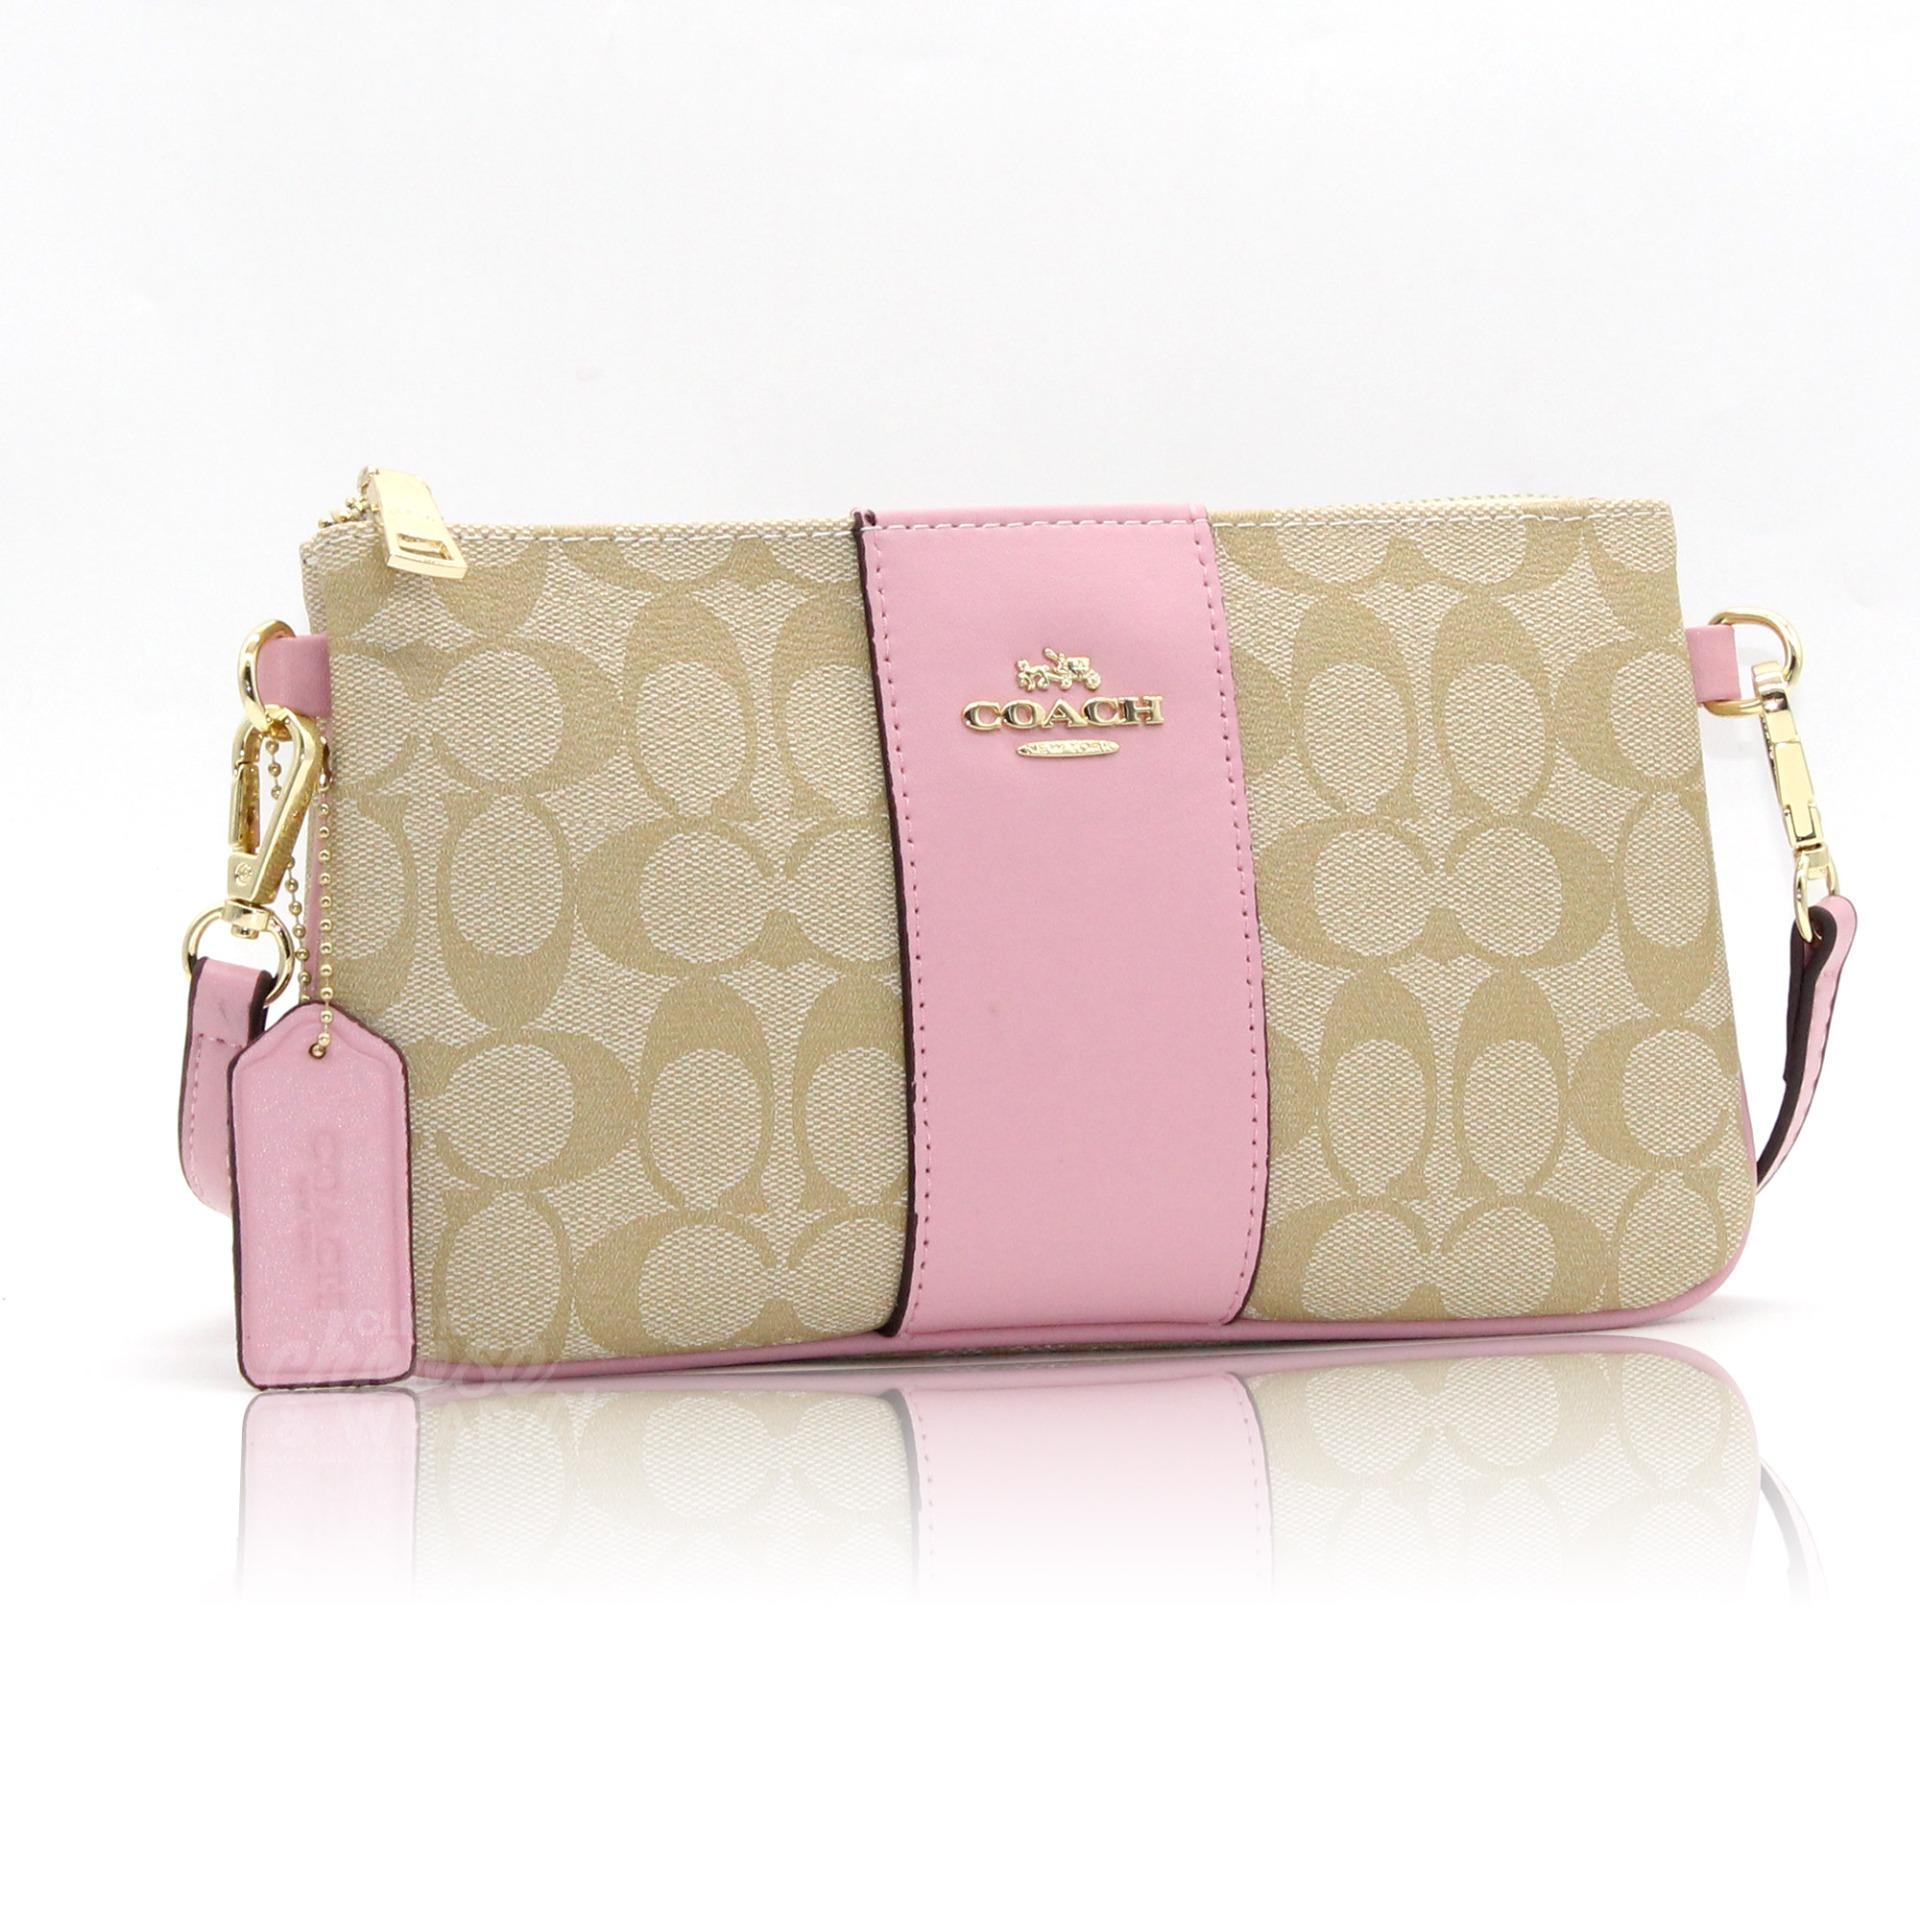 d162ad41fd ... bags wallets on carousell 0ea13 7b7c3  50% off authentic coach coated  canvas crossbody clutch sling signature bag pink 315bf 984d6